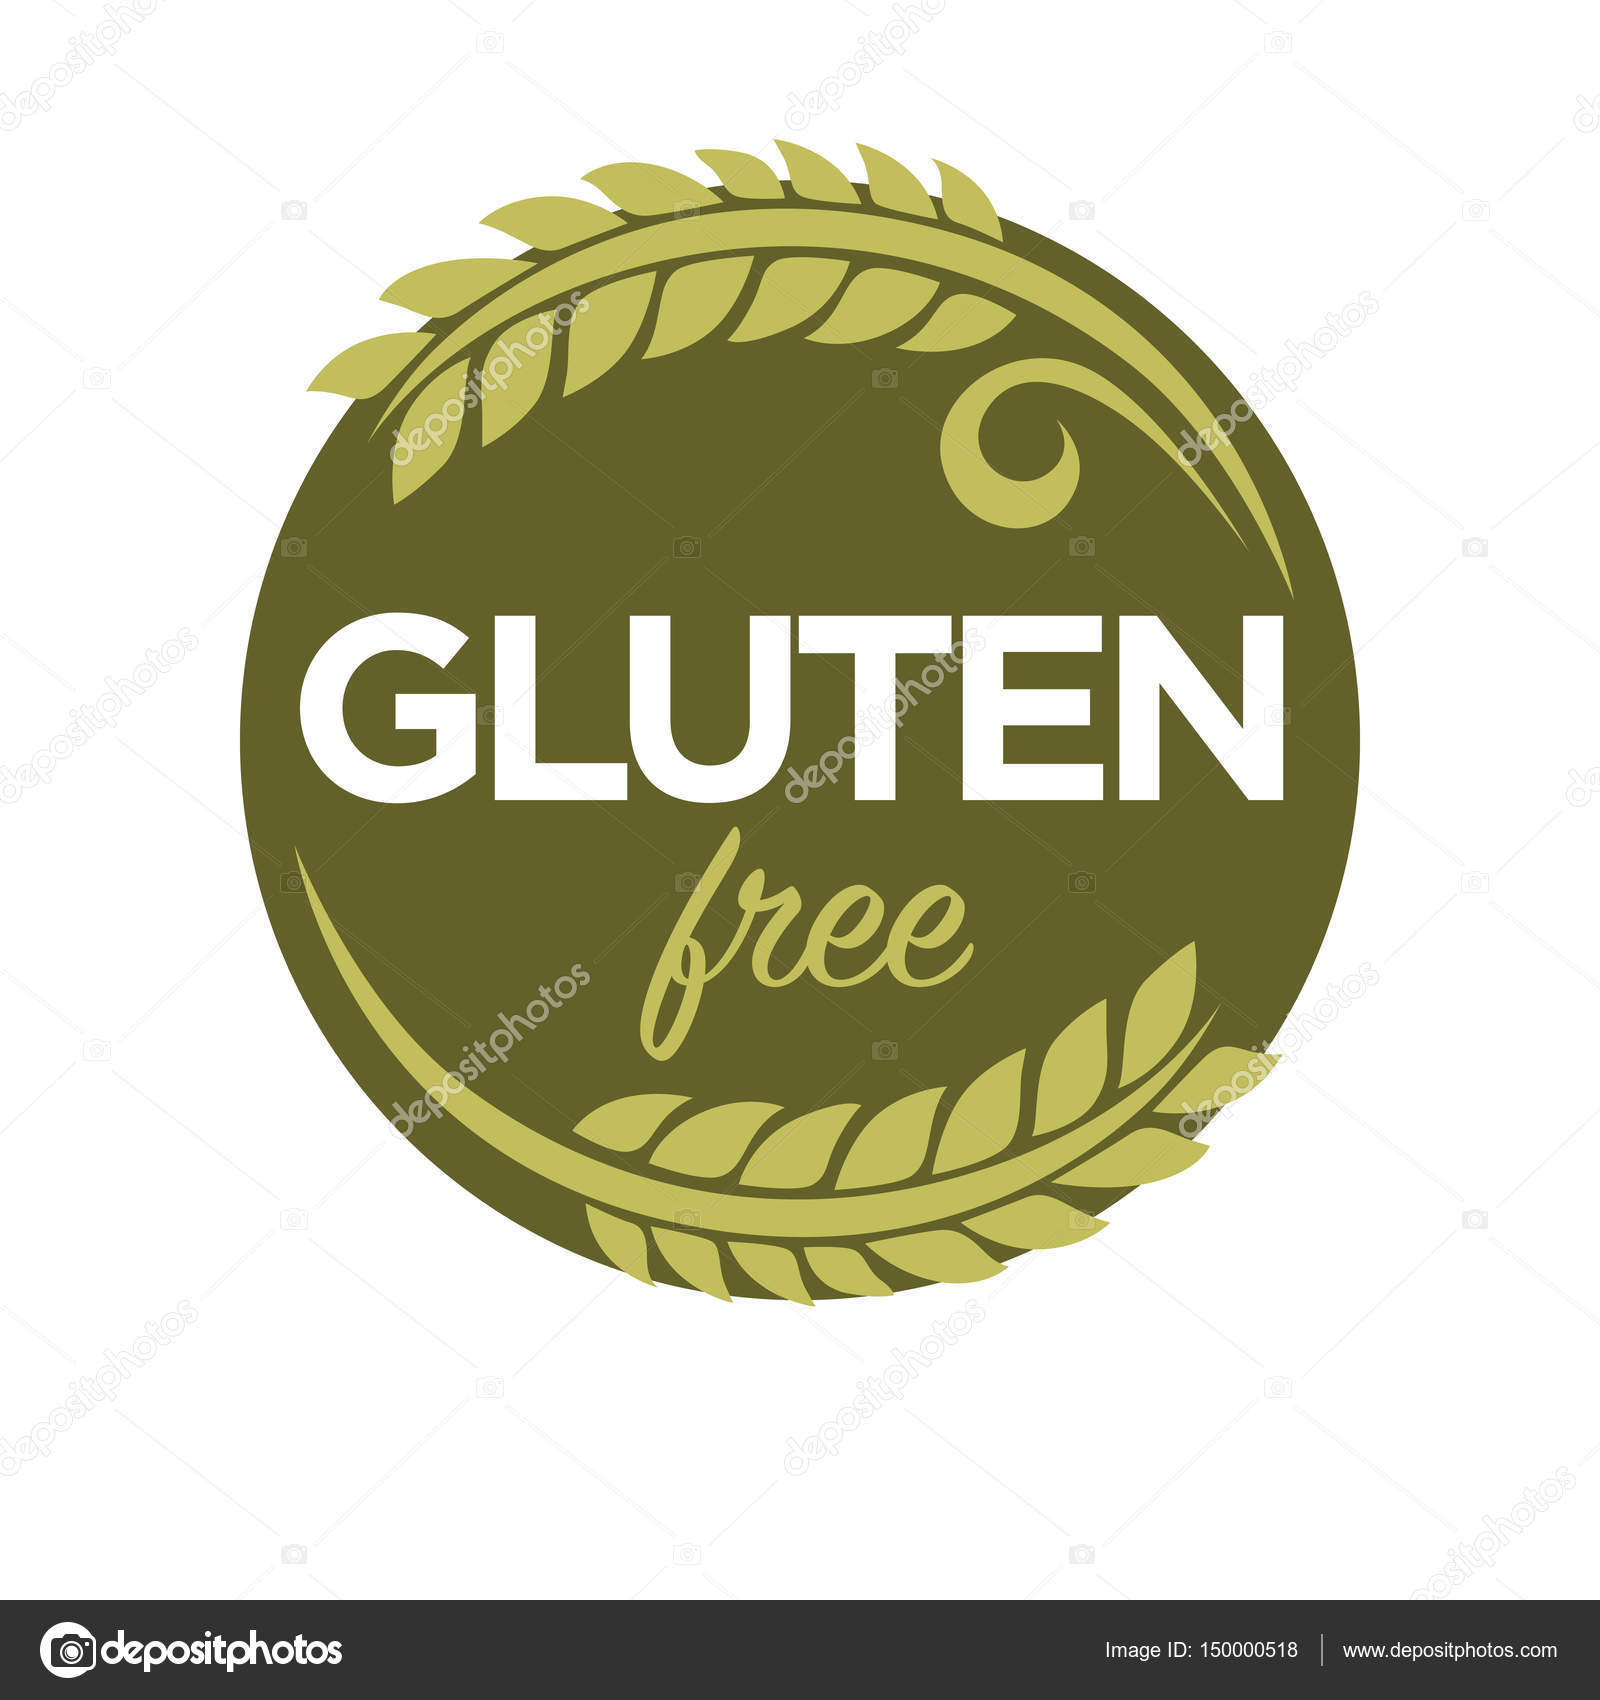 gluten free in cereal grains logo � stock vector